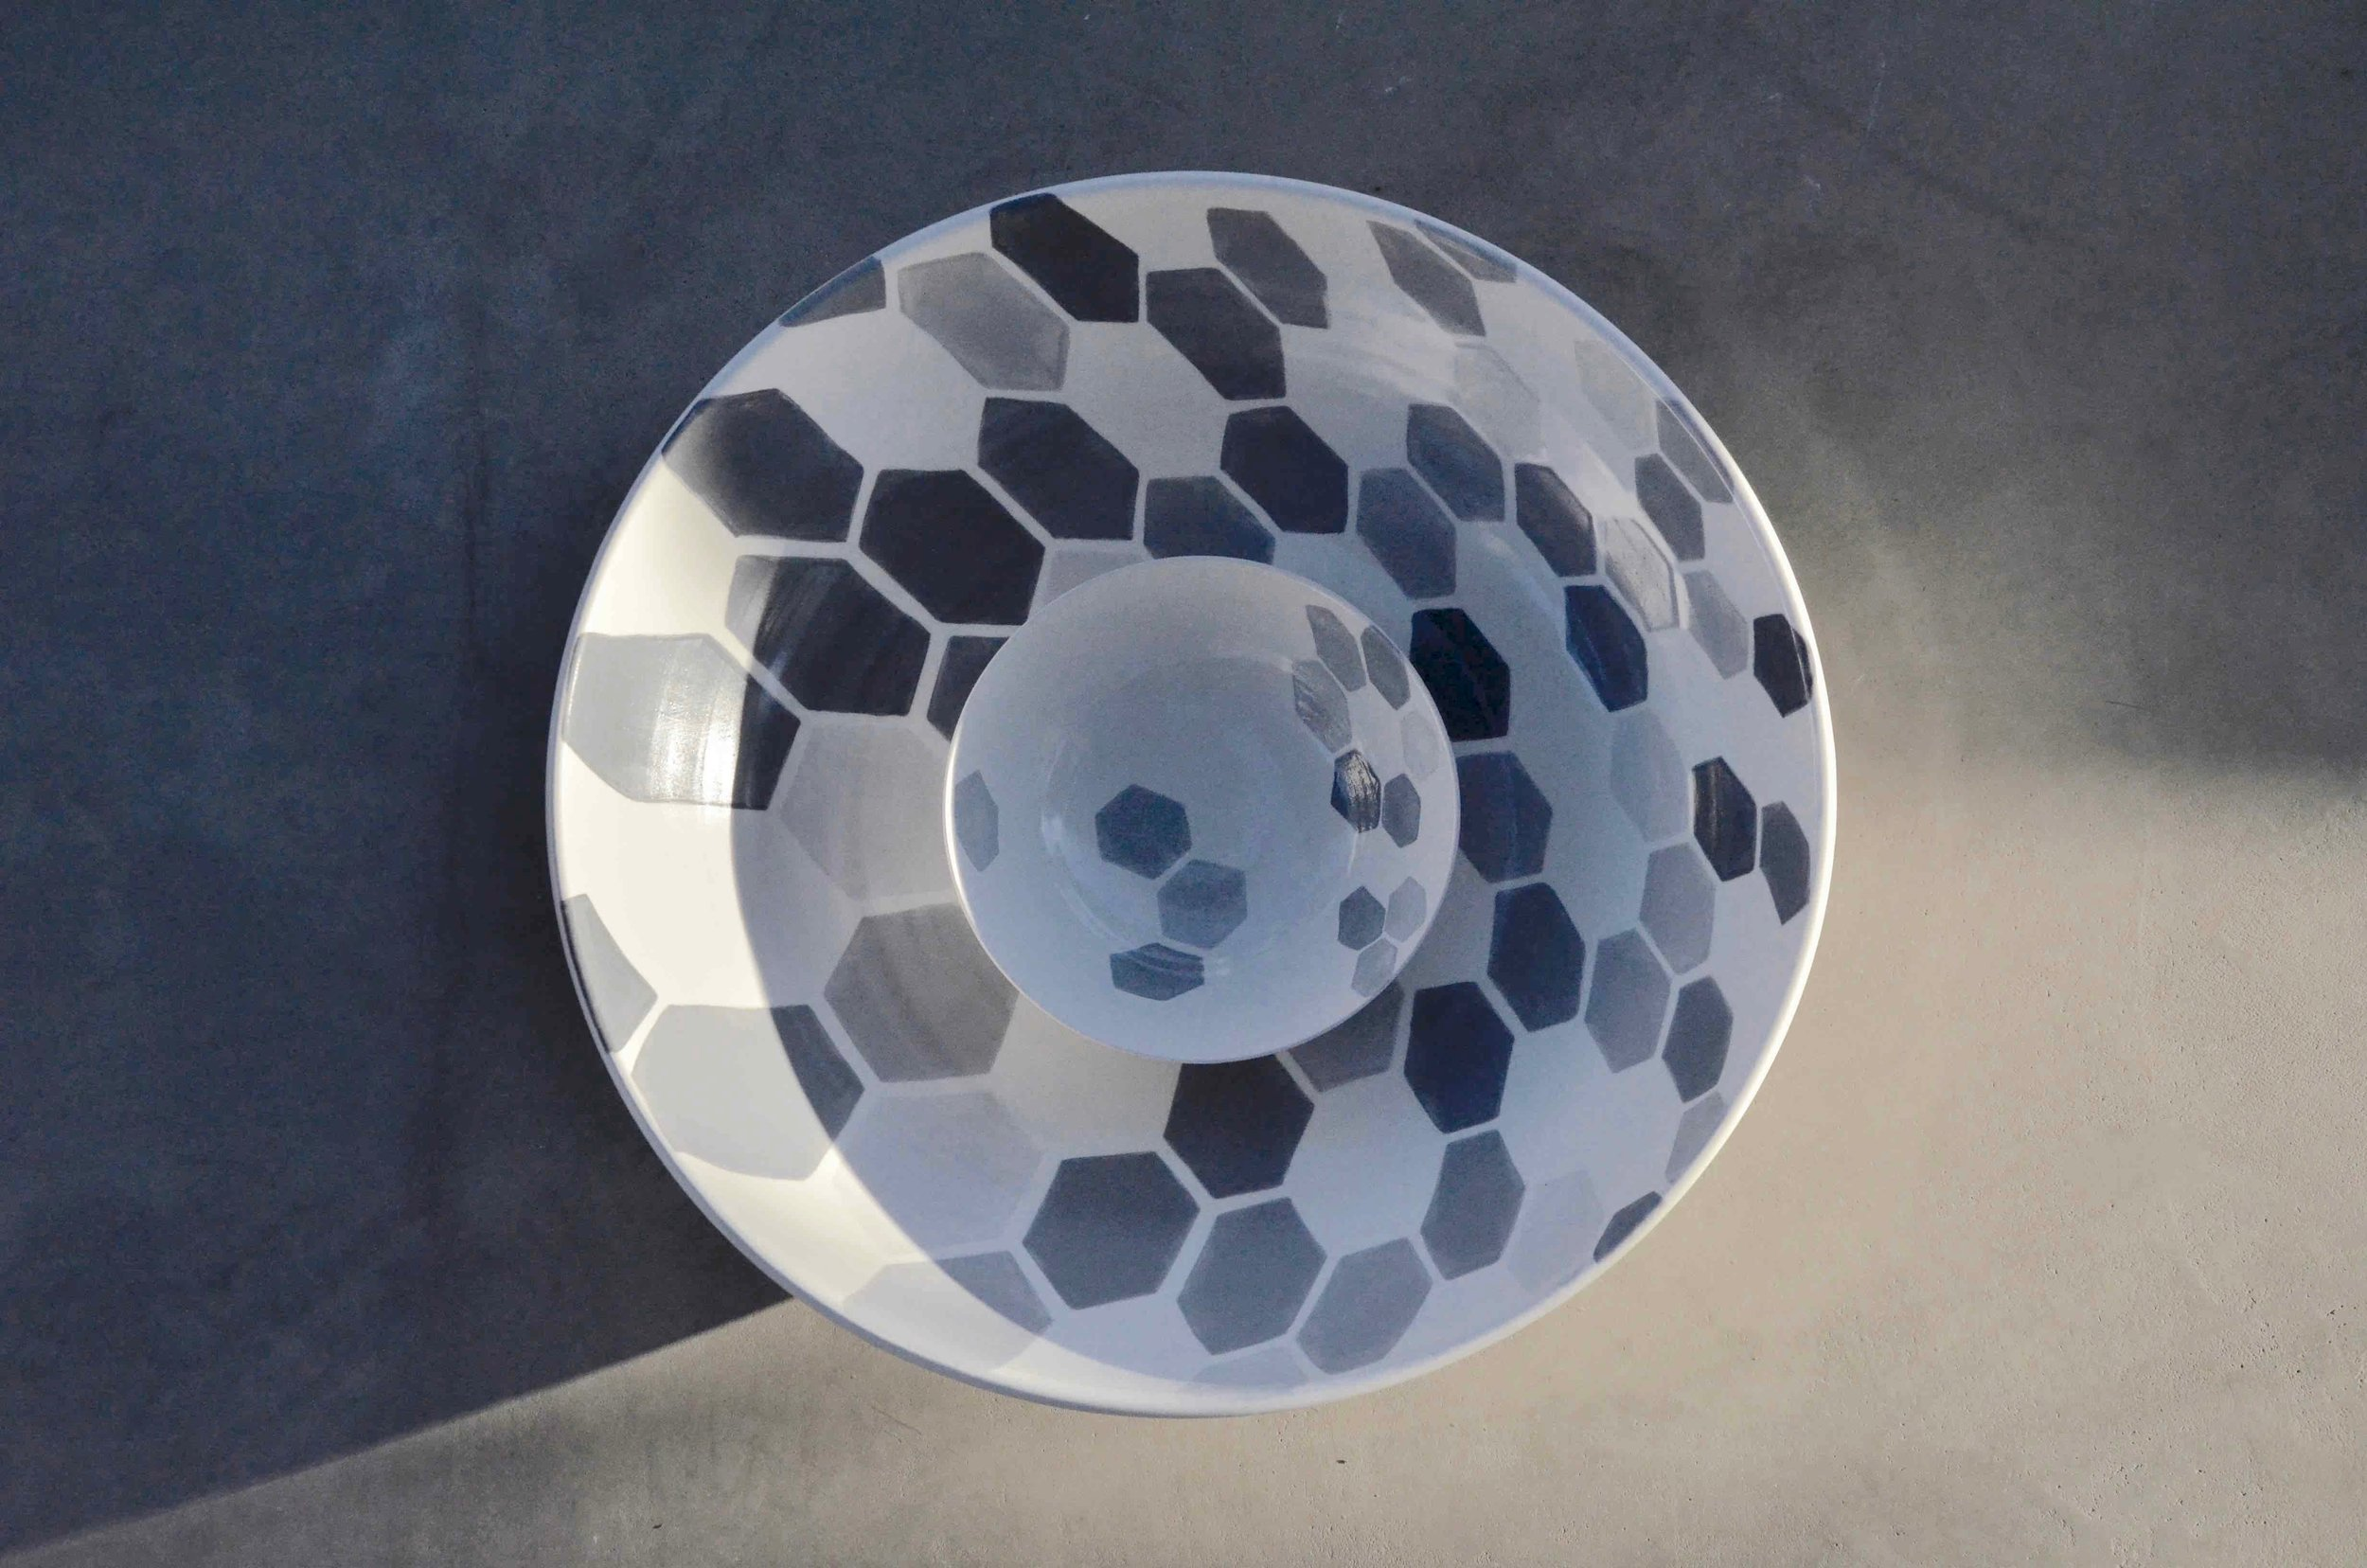 white ceramic body heavy: grey hexagon perspective bowl 16x38 (350E) white ceramic body light bowl 6x15cm (E)